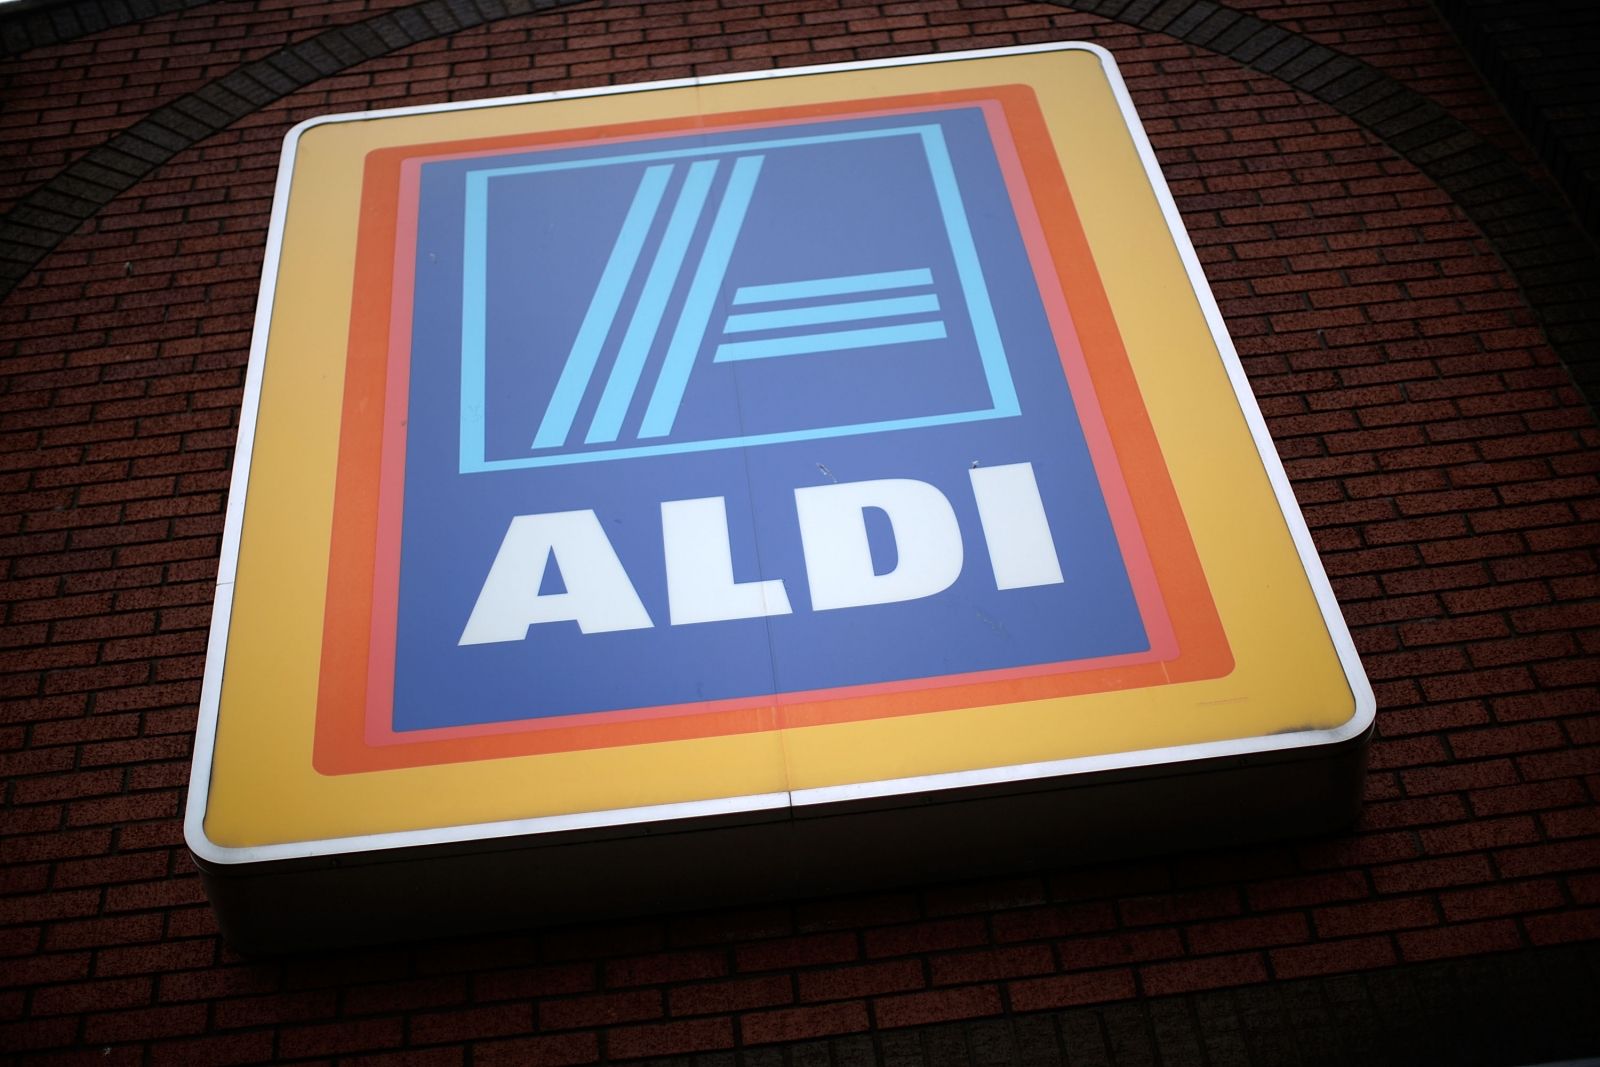 Aldi raiders pointed gun at child